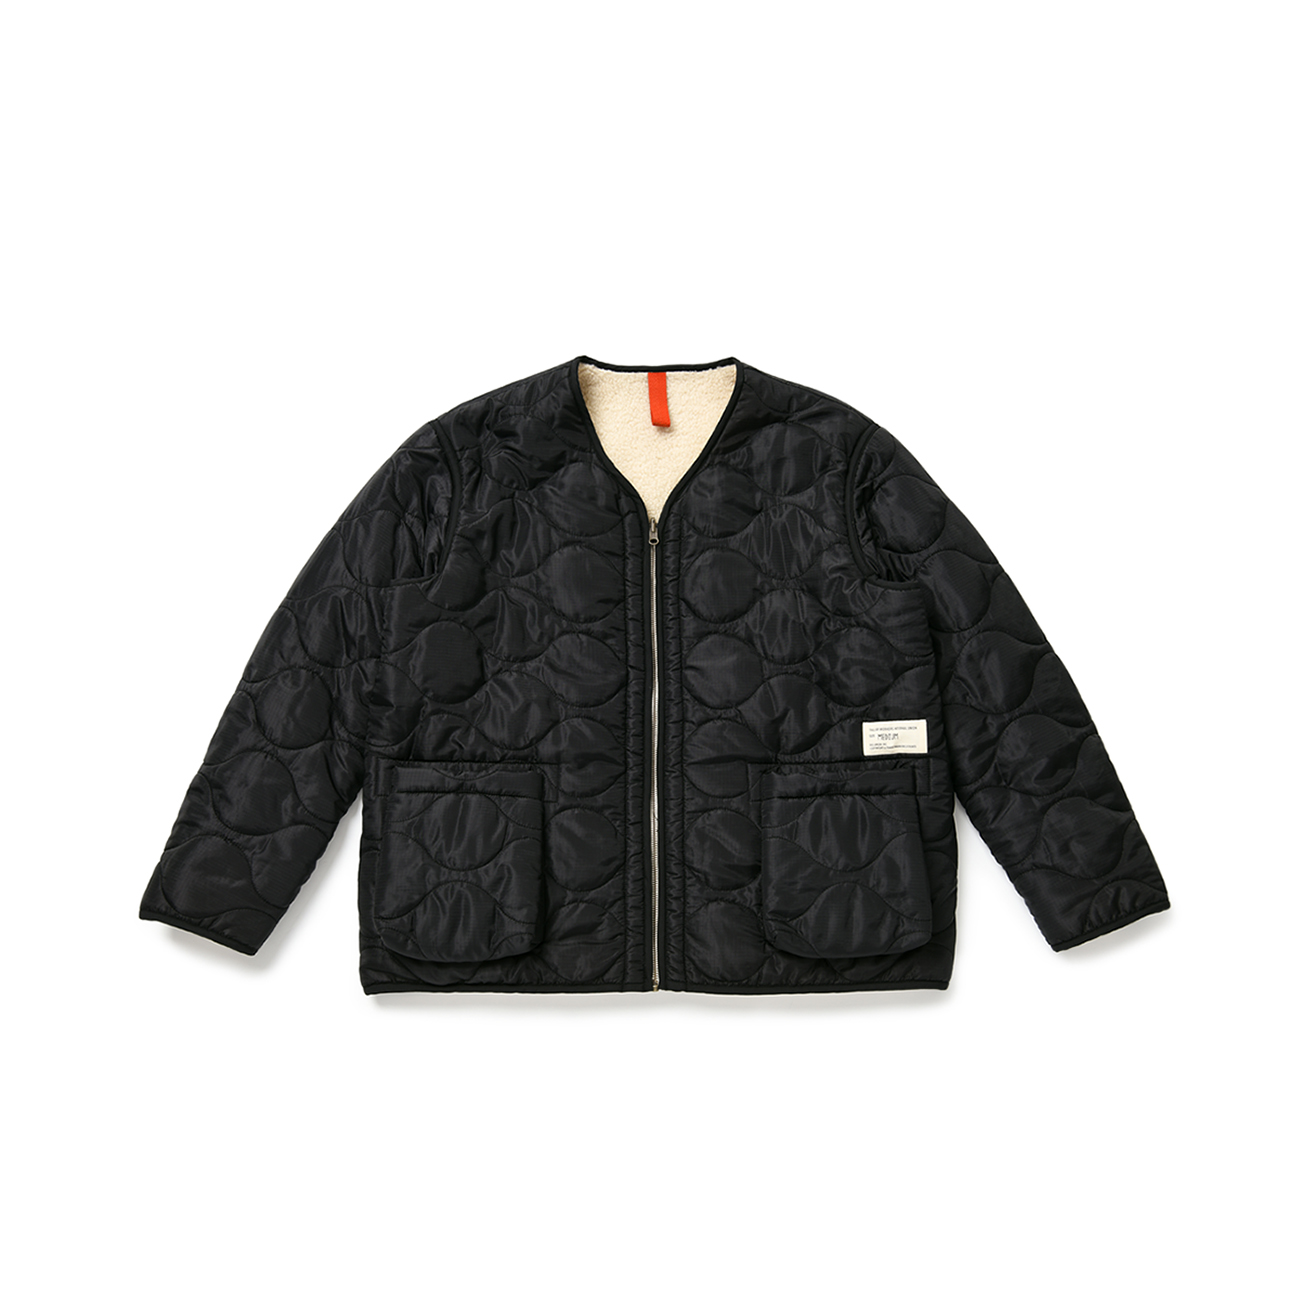 BU M QUILTING JK BLACK